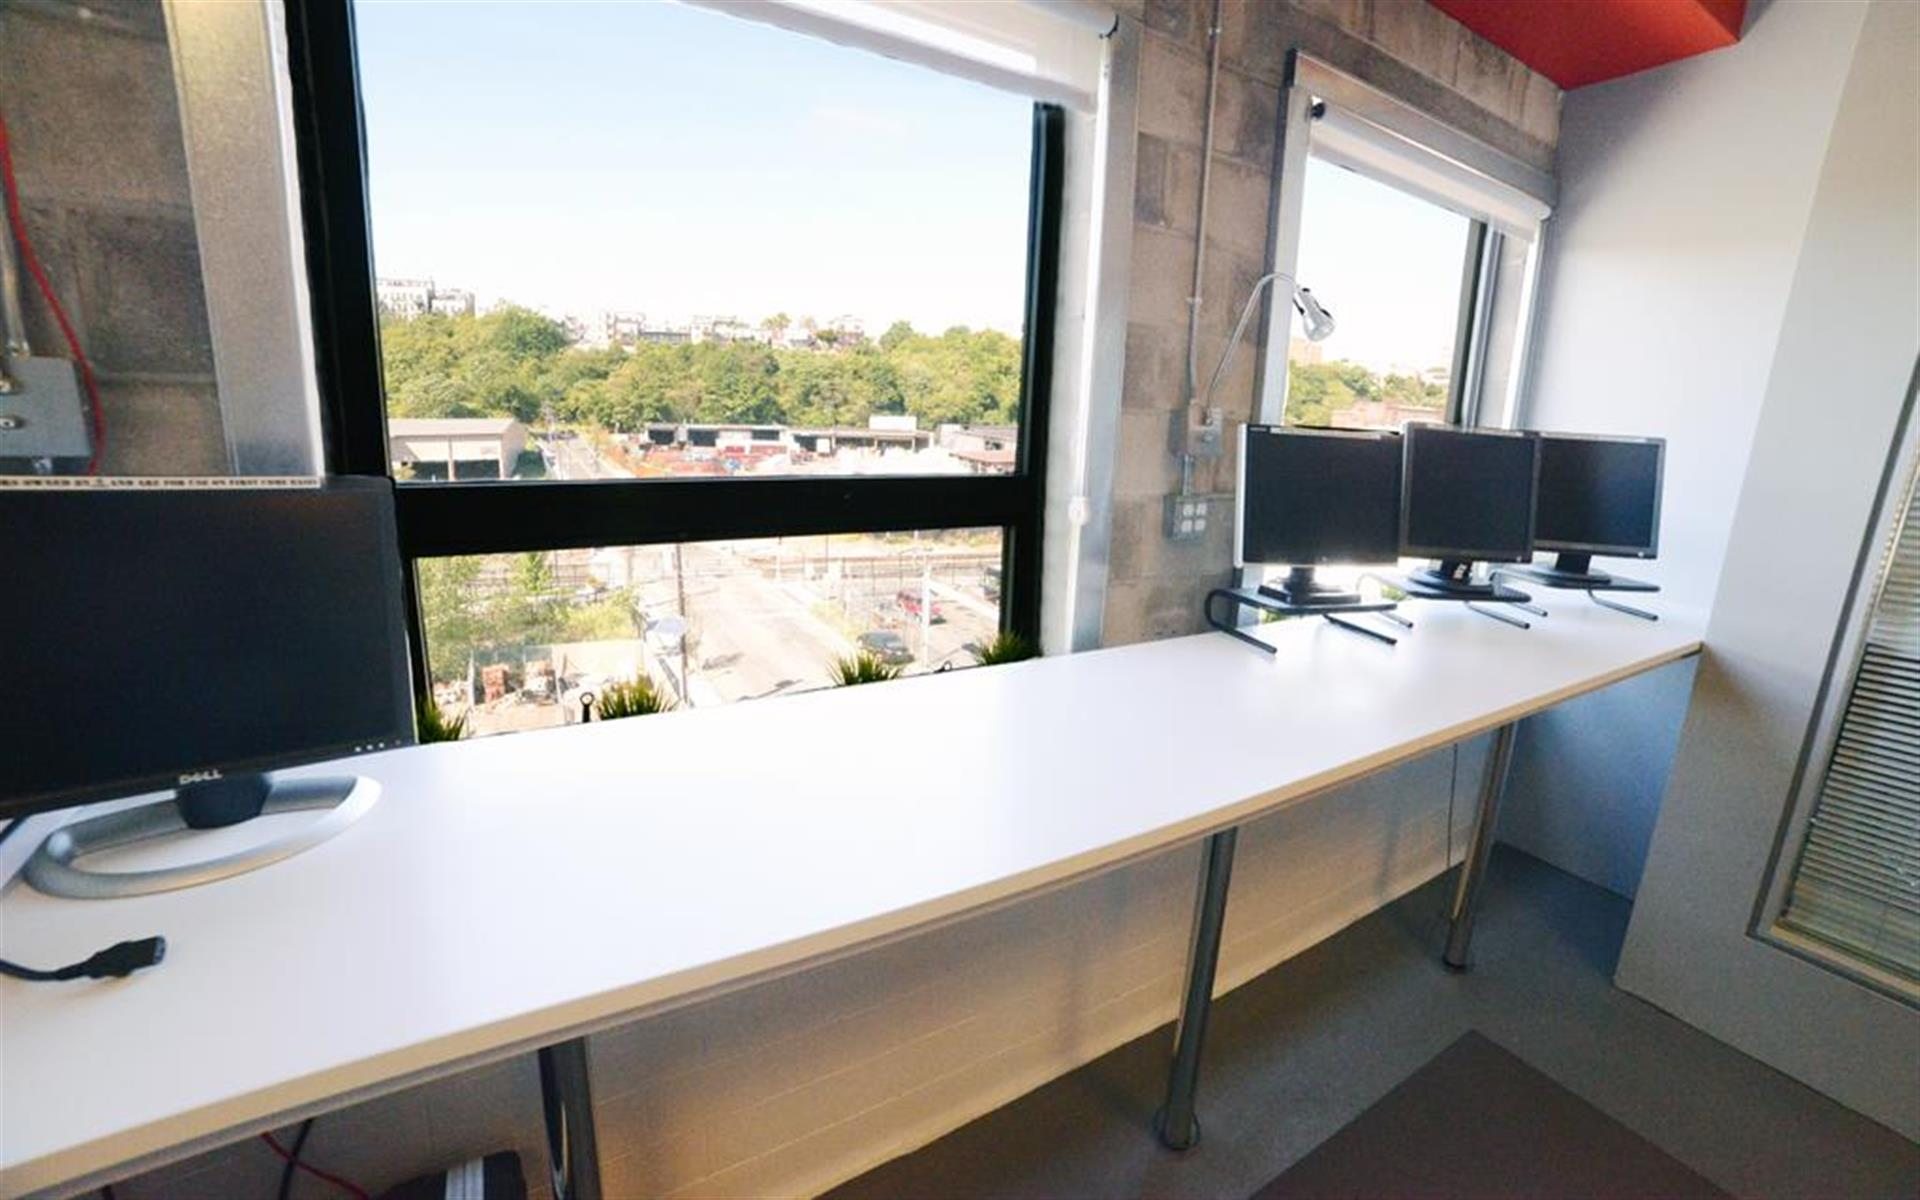 Mission 50 - NJ's Premier Coworking Space - Team Standing Workspace for 3